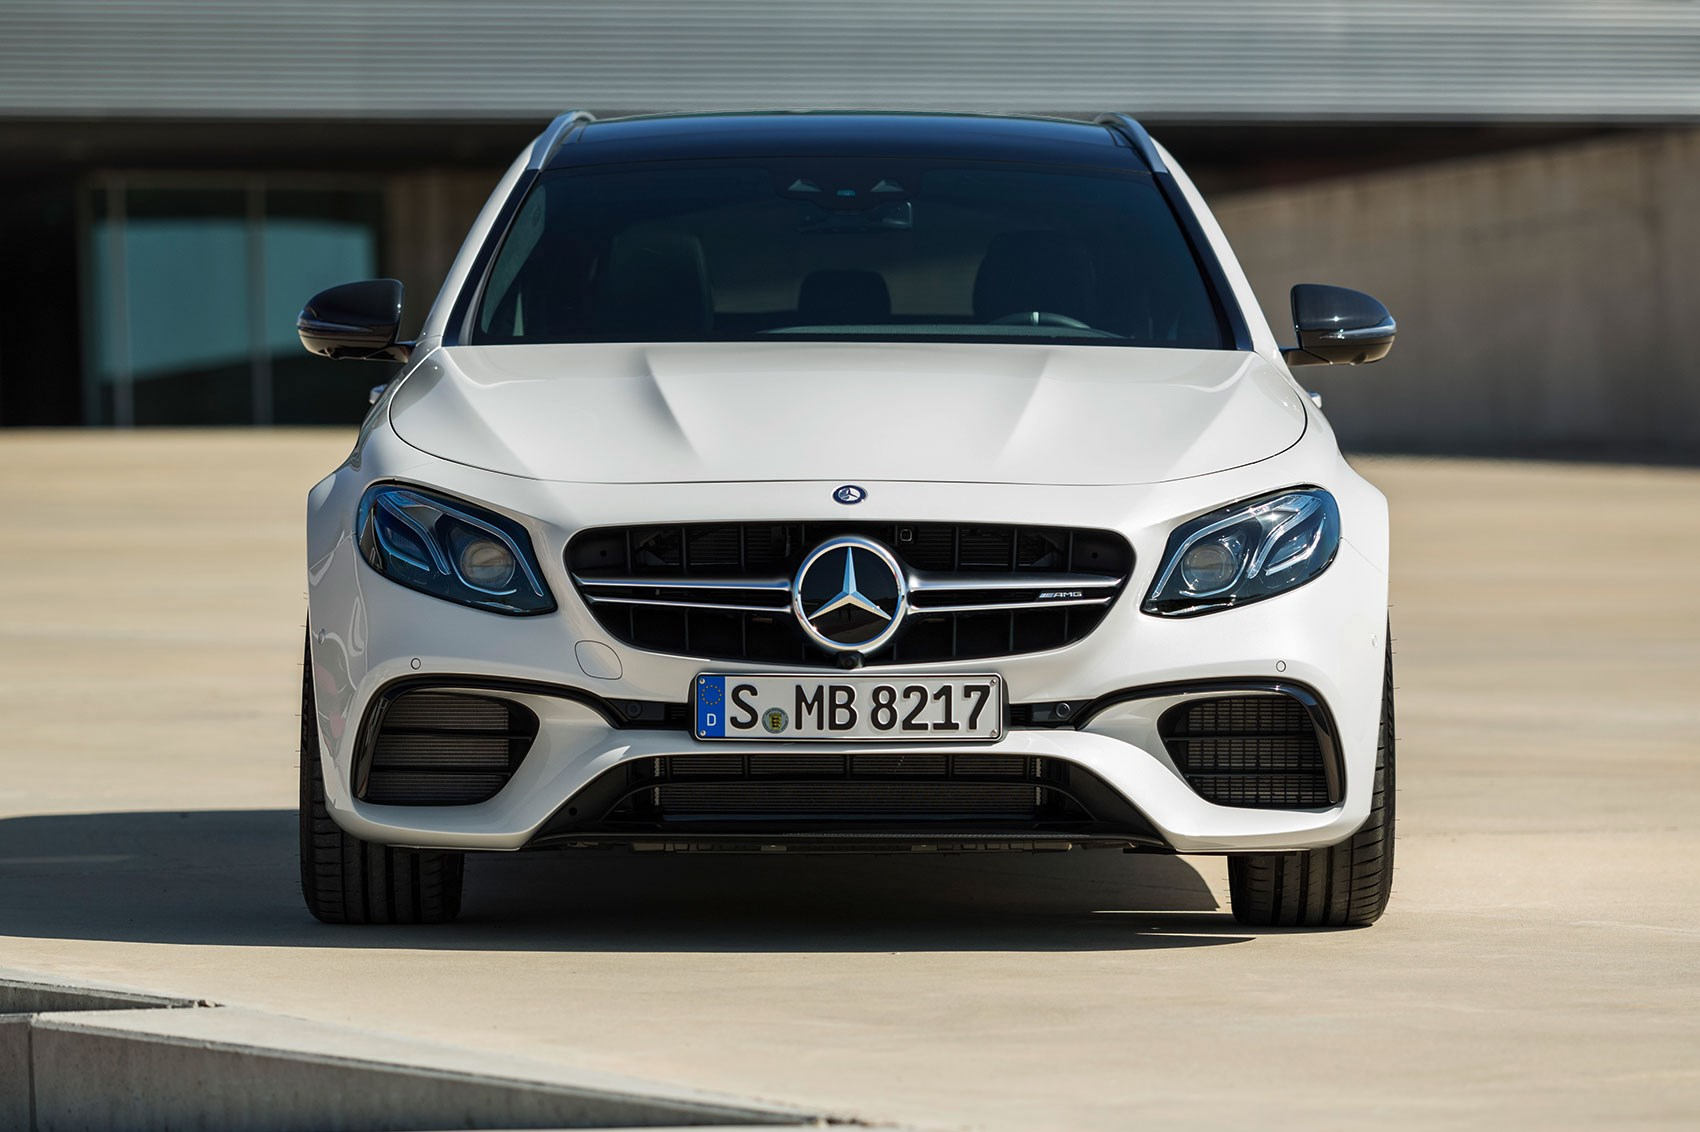 Mercedes amg e63 4matic estate prices revealed for 2017 for Mercedes benz e63 amg price